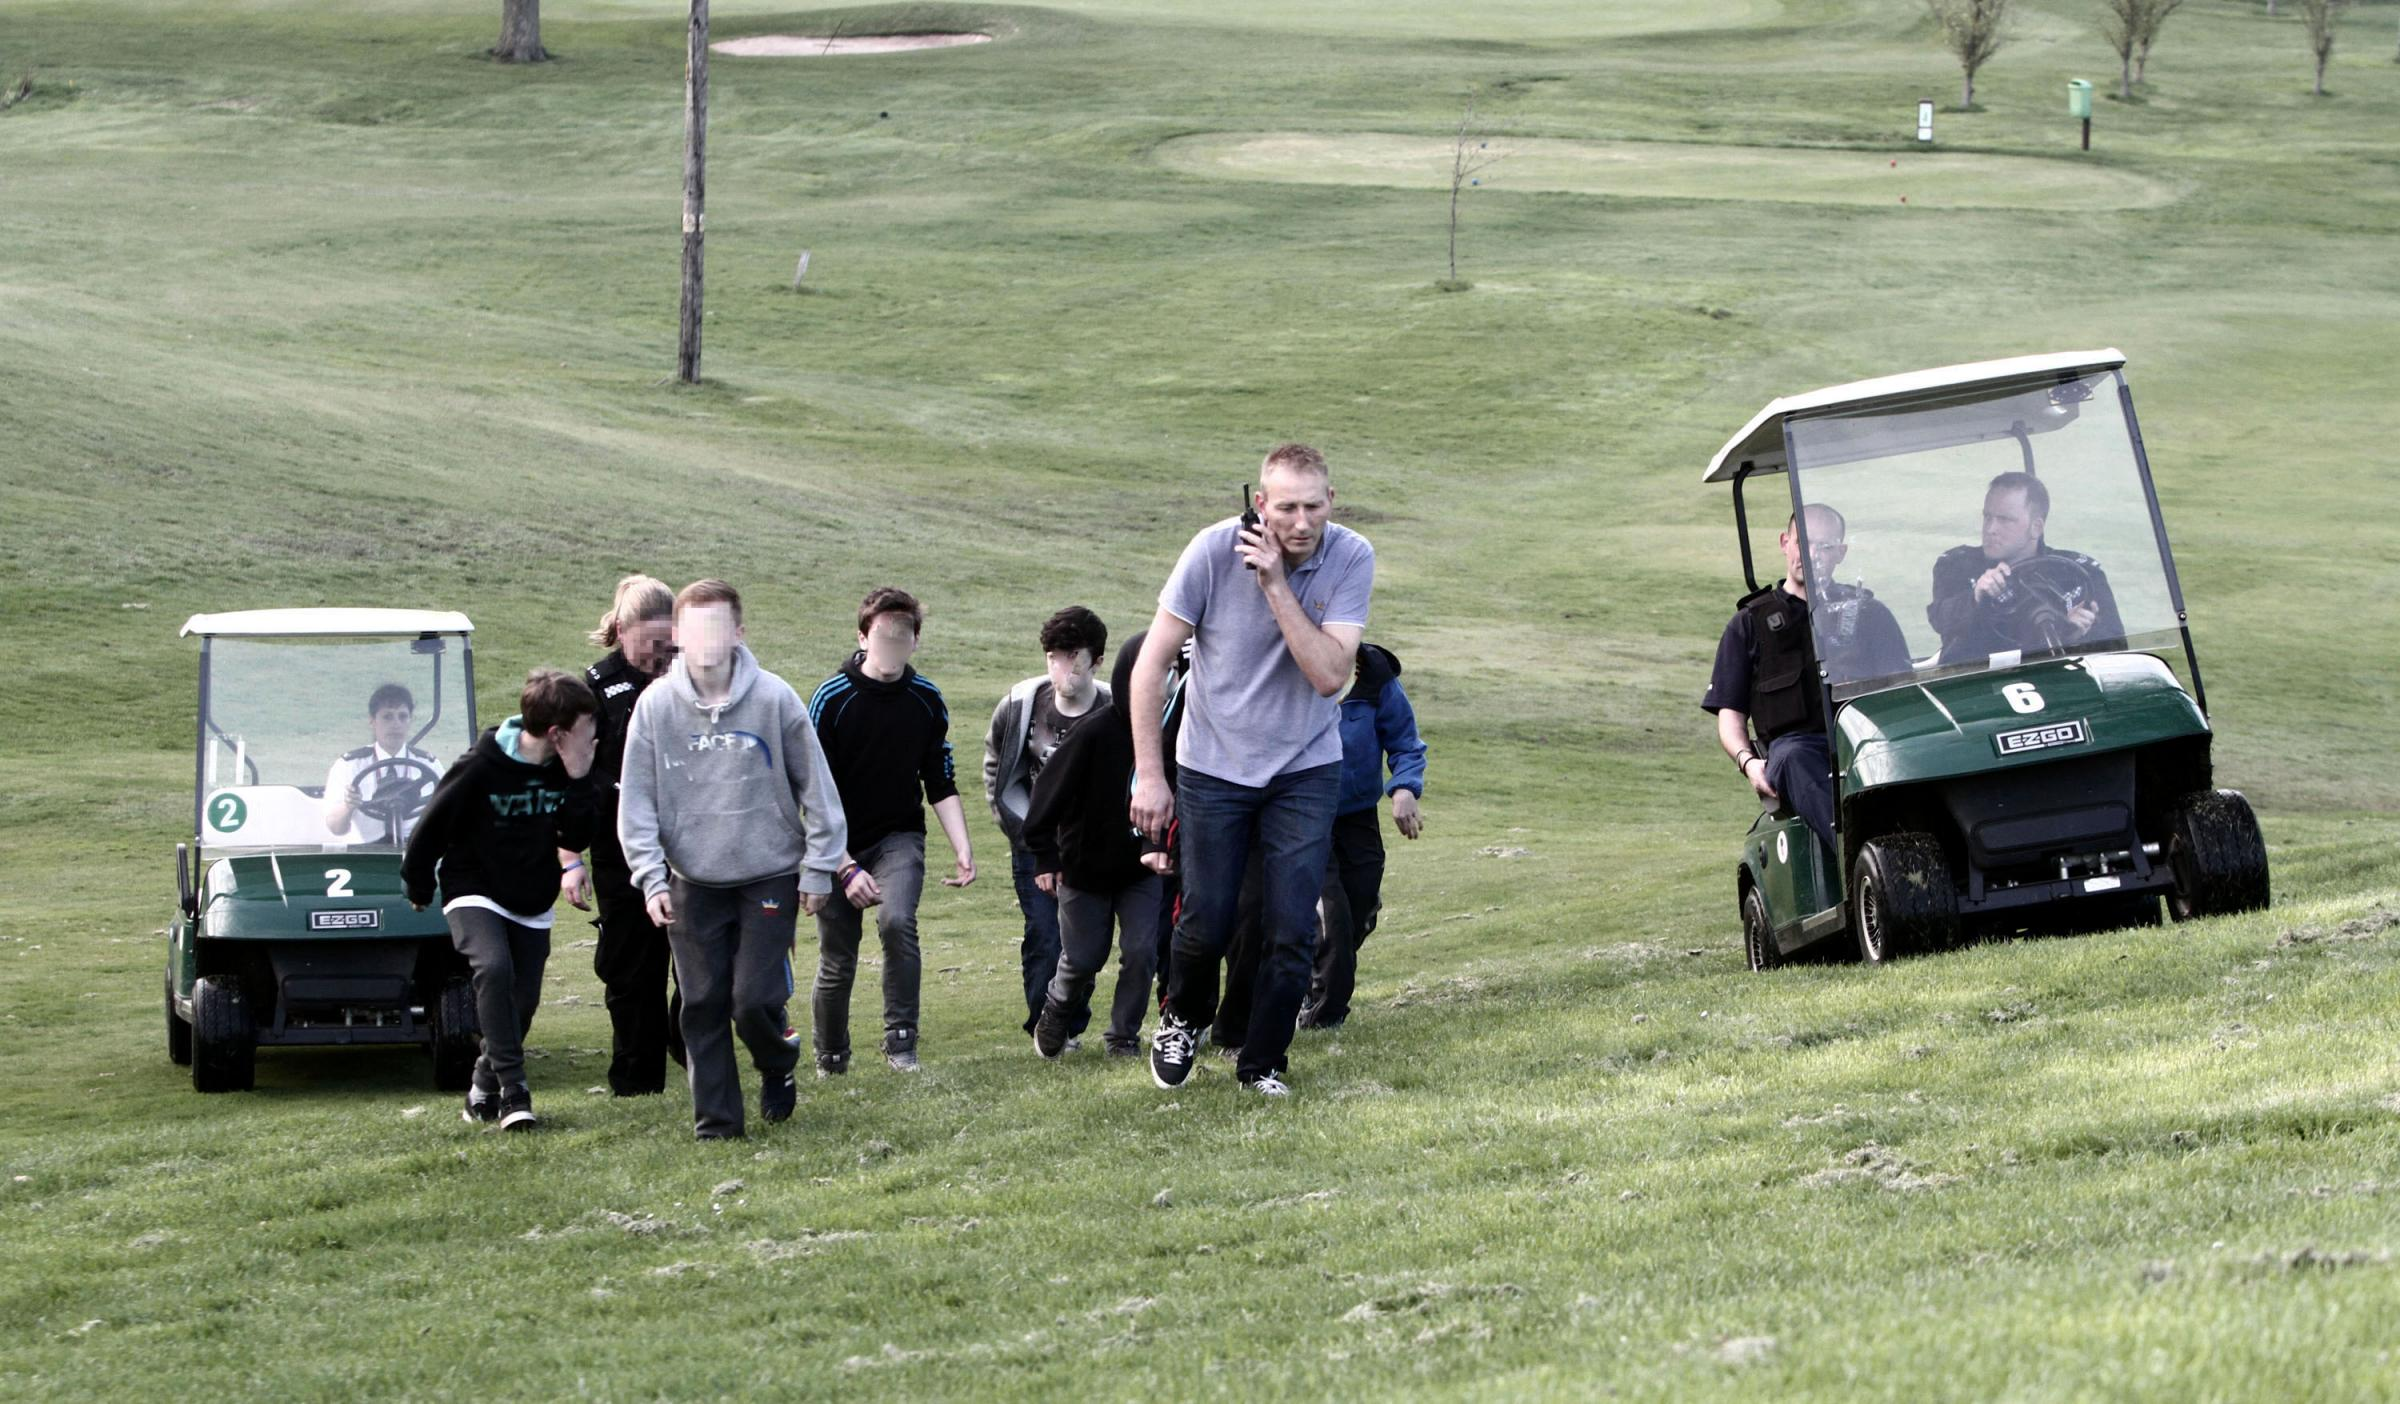 It's a fairway cop - as golf buggies used to round up youths